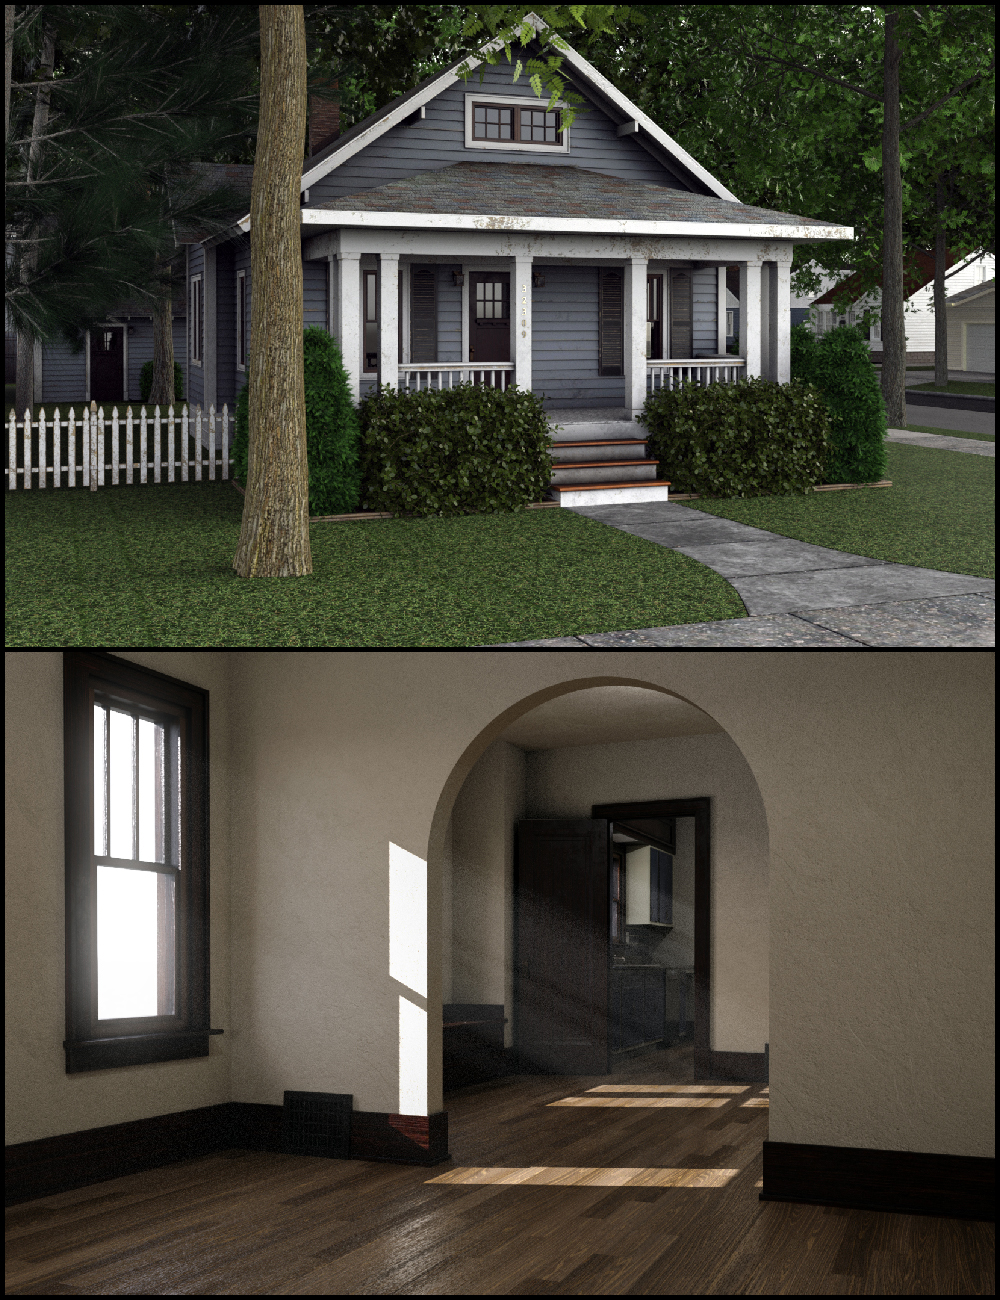 C3D Neighborhood XPack 1 by: Collective3d, 3D Models by Daz 3D